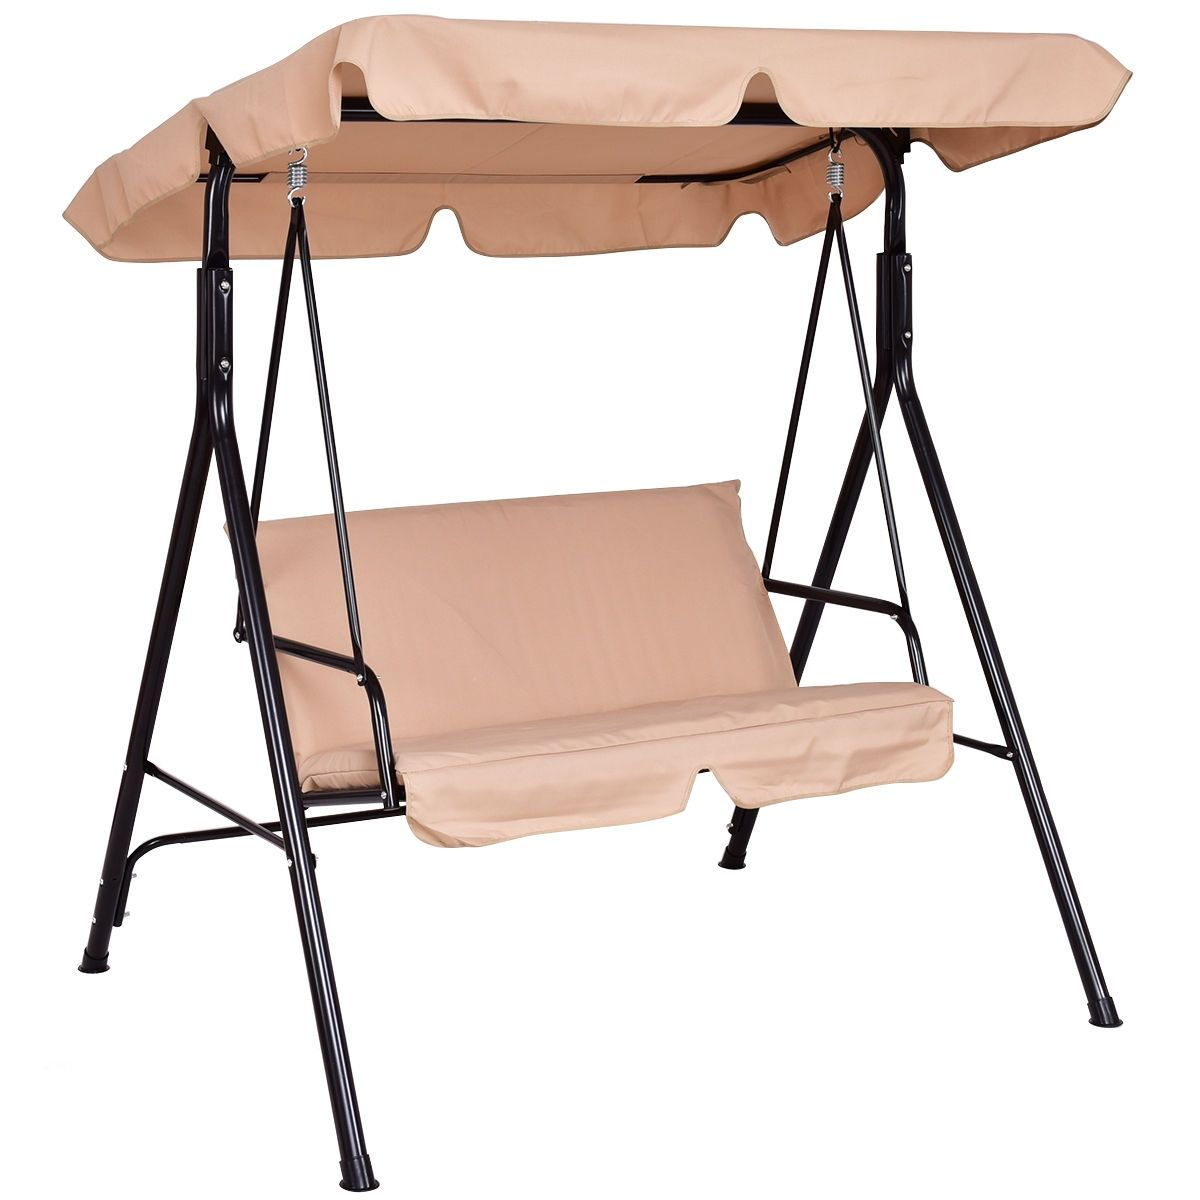 Love Seat Swing With Patio Canopy | Canopy Swing, Outdoor Intended For Patio Loveseat Canopy Hammock Porch Swings With Stand (Image 18 of 25)